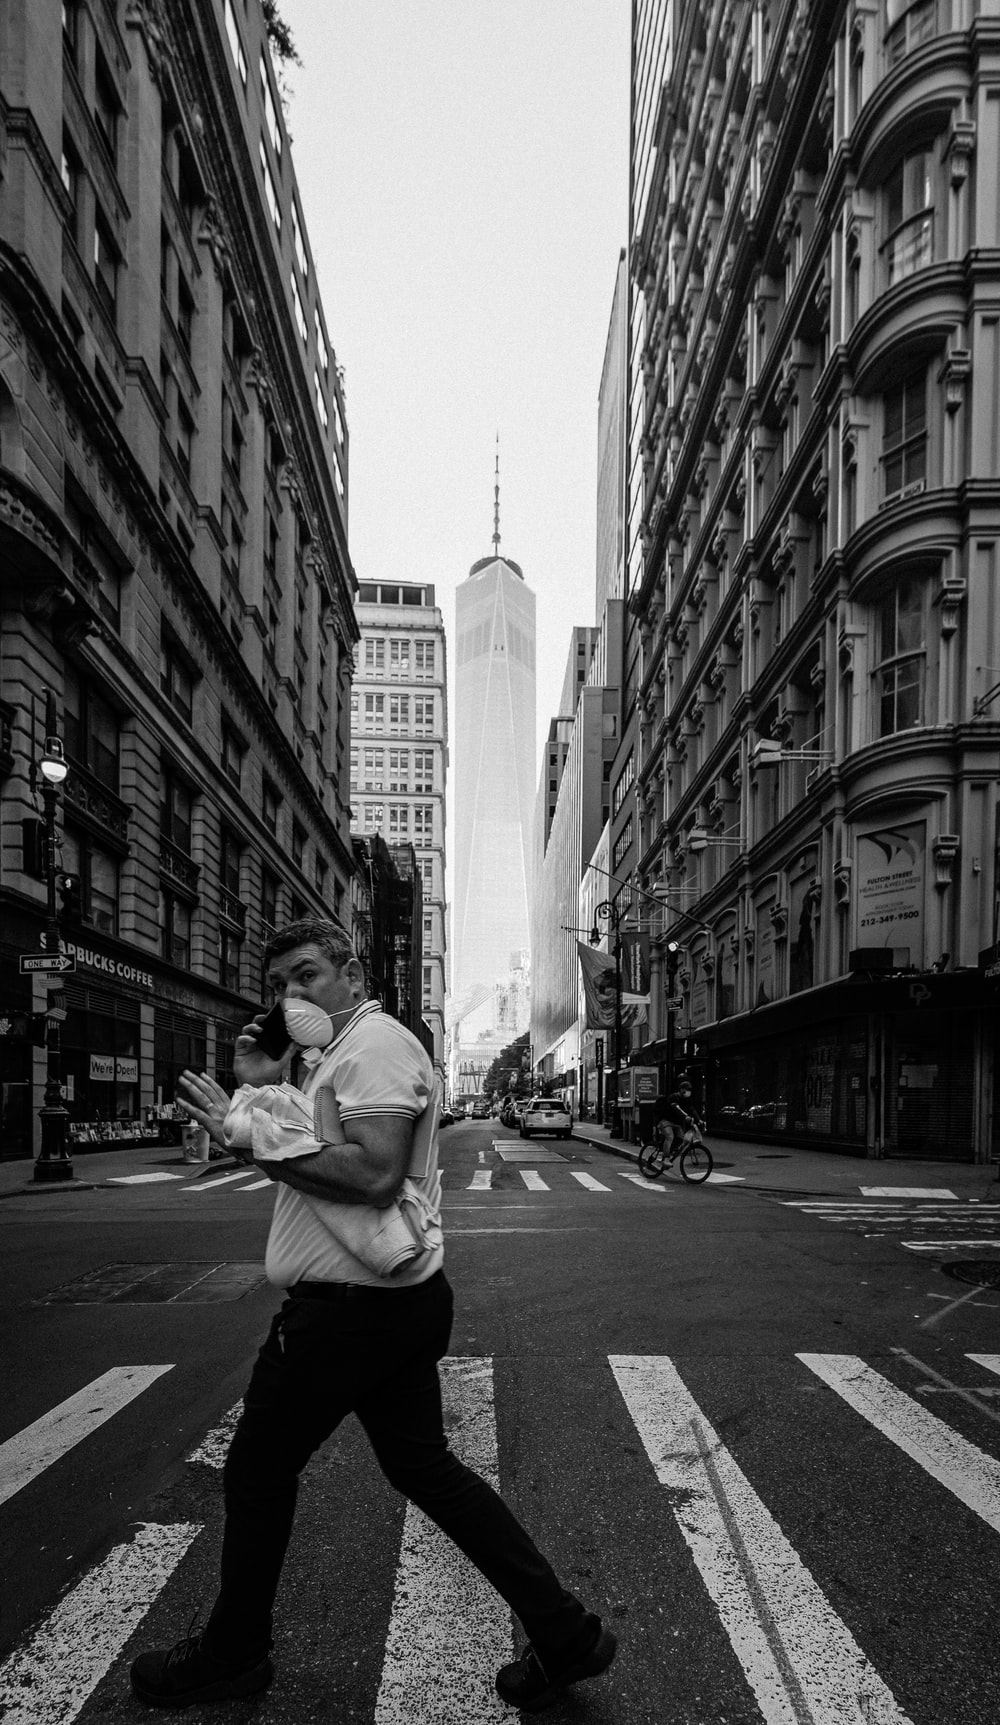 man in white long sleeve shirt and black pants sitting on sidewalk in grayscale photography